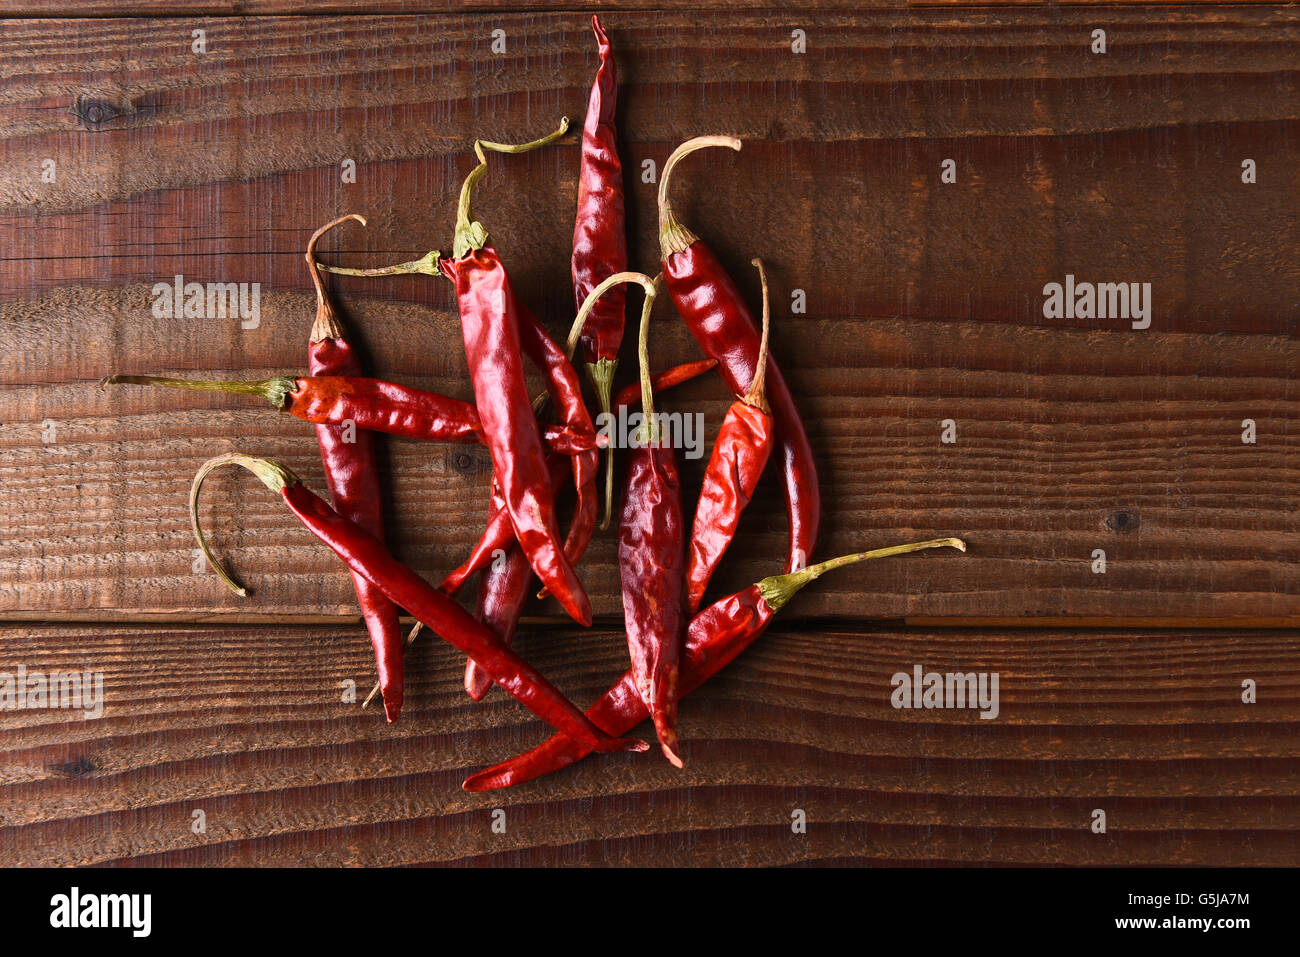 Dried Chili Still Life. Horizontal format on a rustic wood table with copy space. - Stock Image